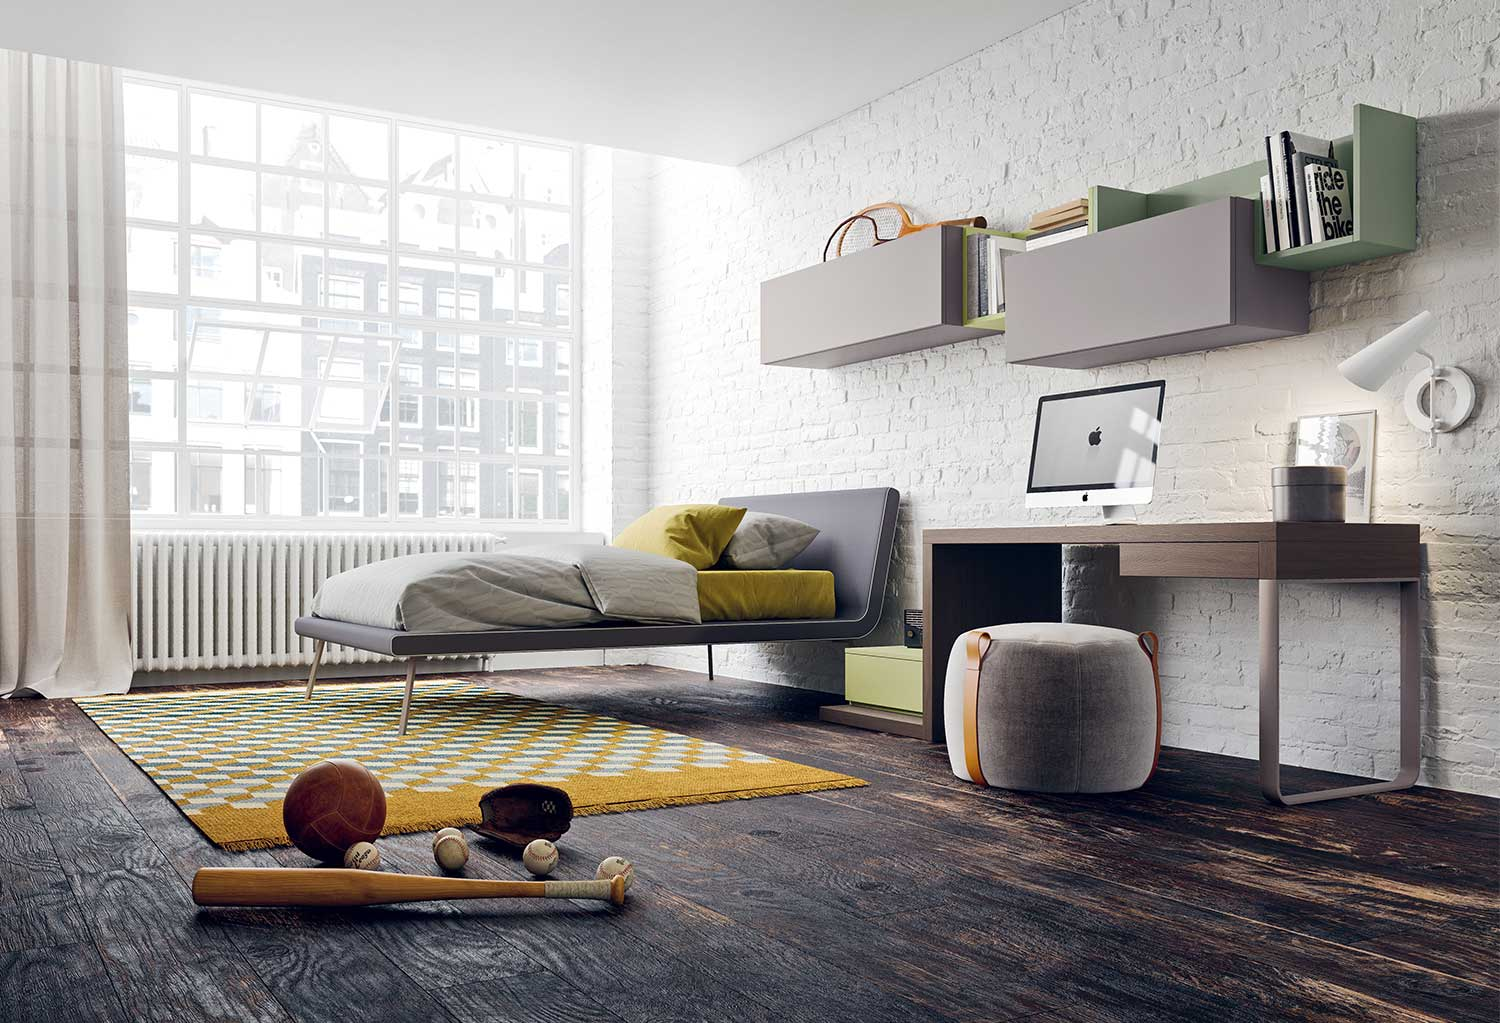 Modern teen boy bedroom furniture with bed, desk, wardrobe and bookshelf